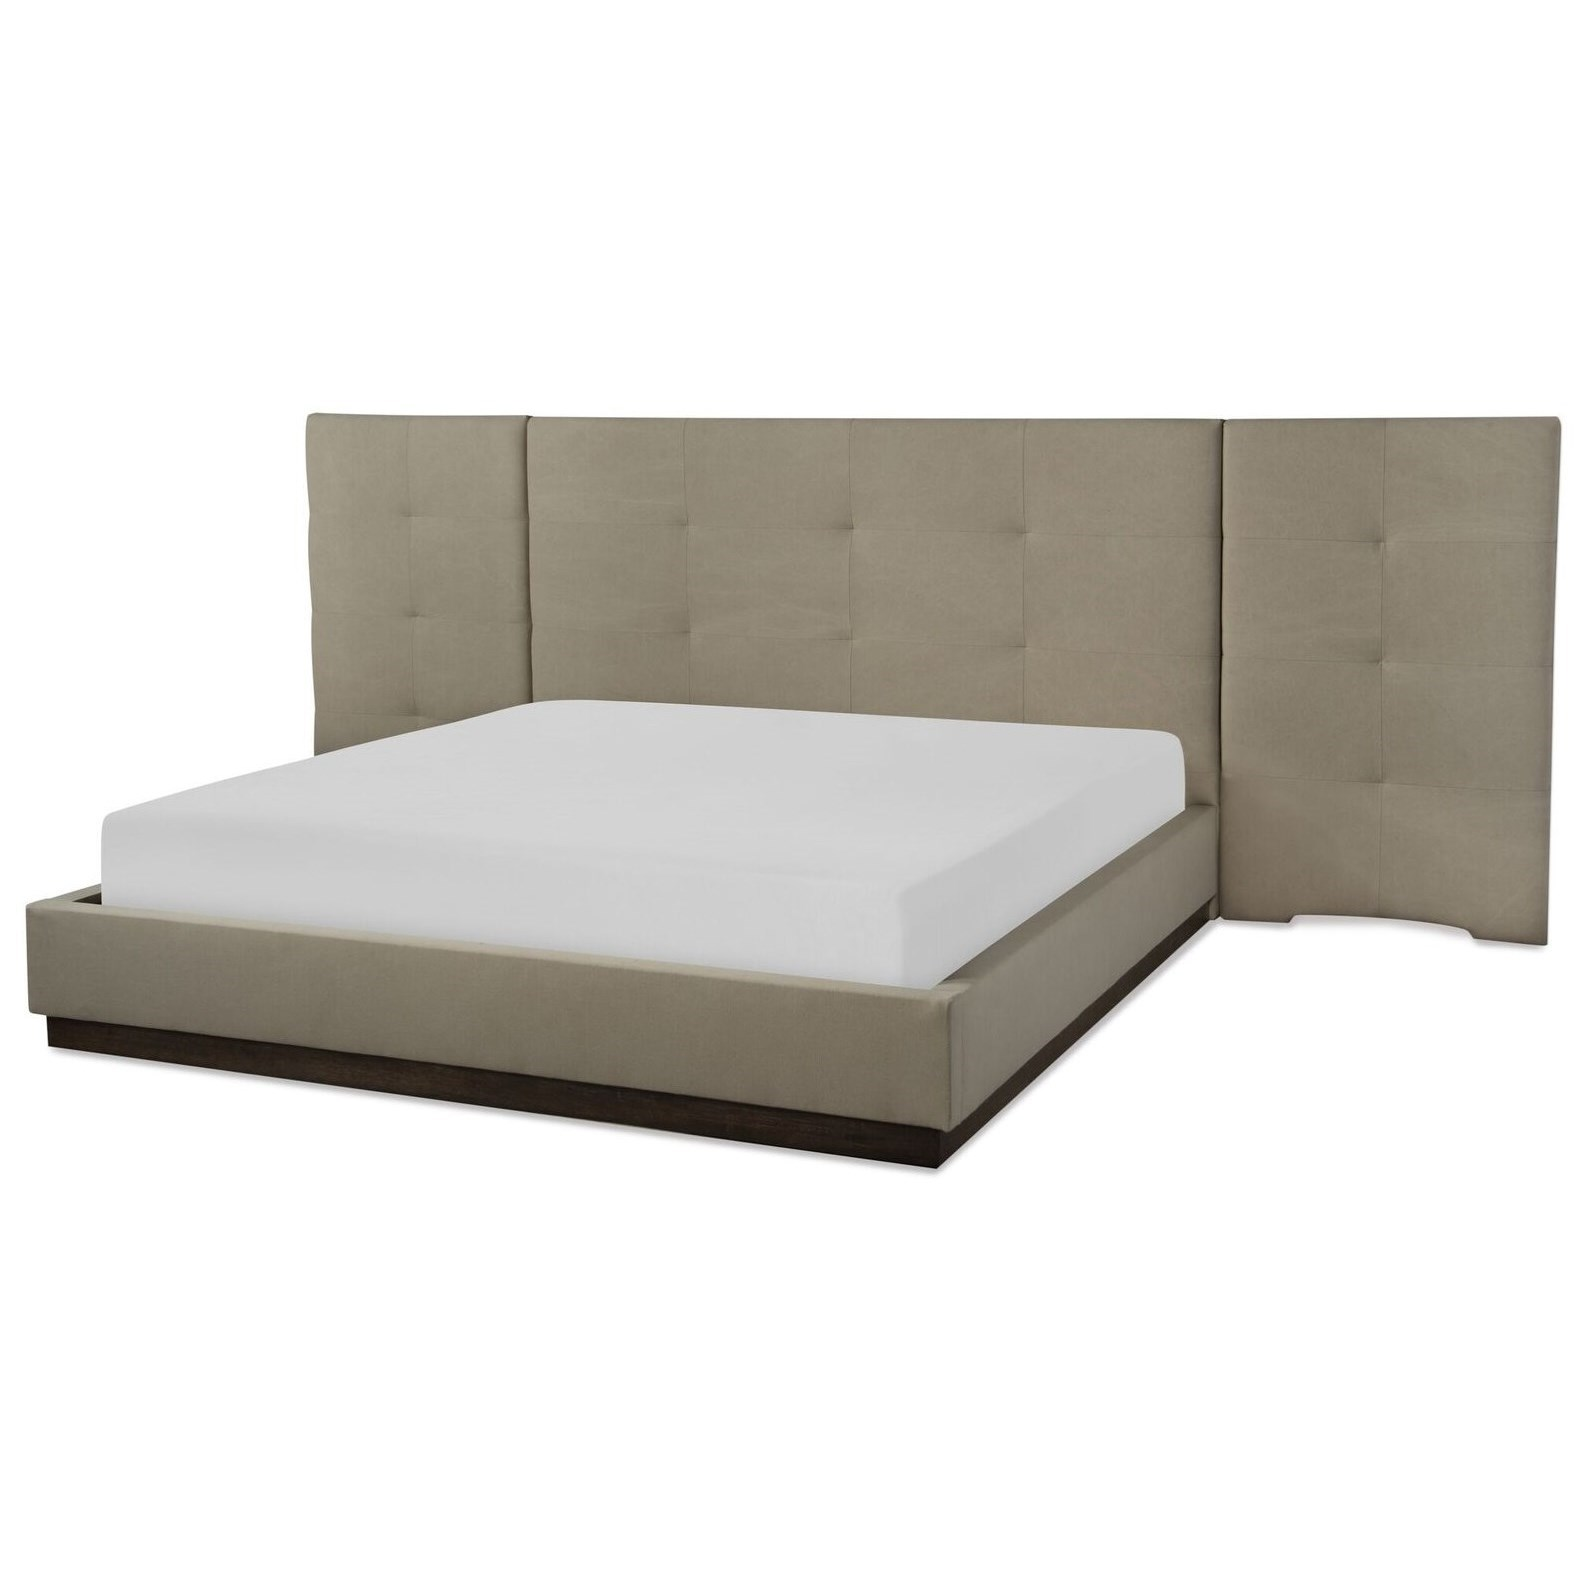 Queen Upholstered Wall Bed w/Panels